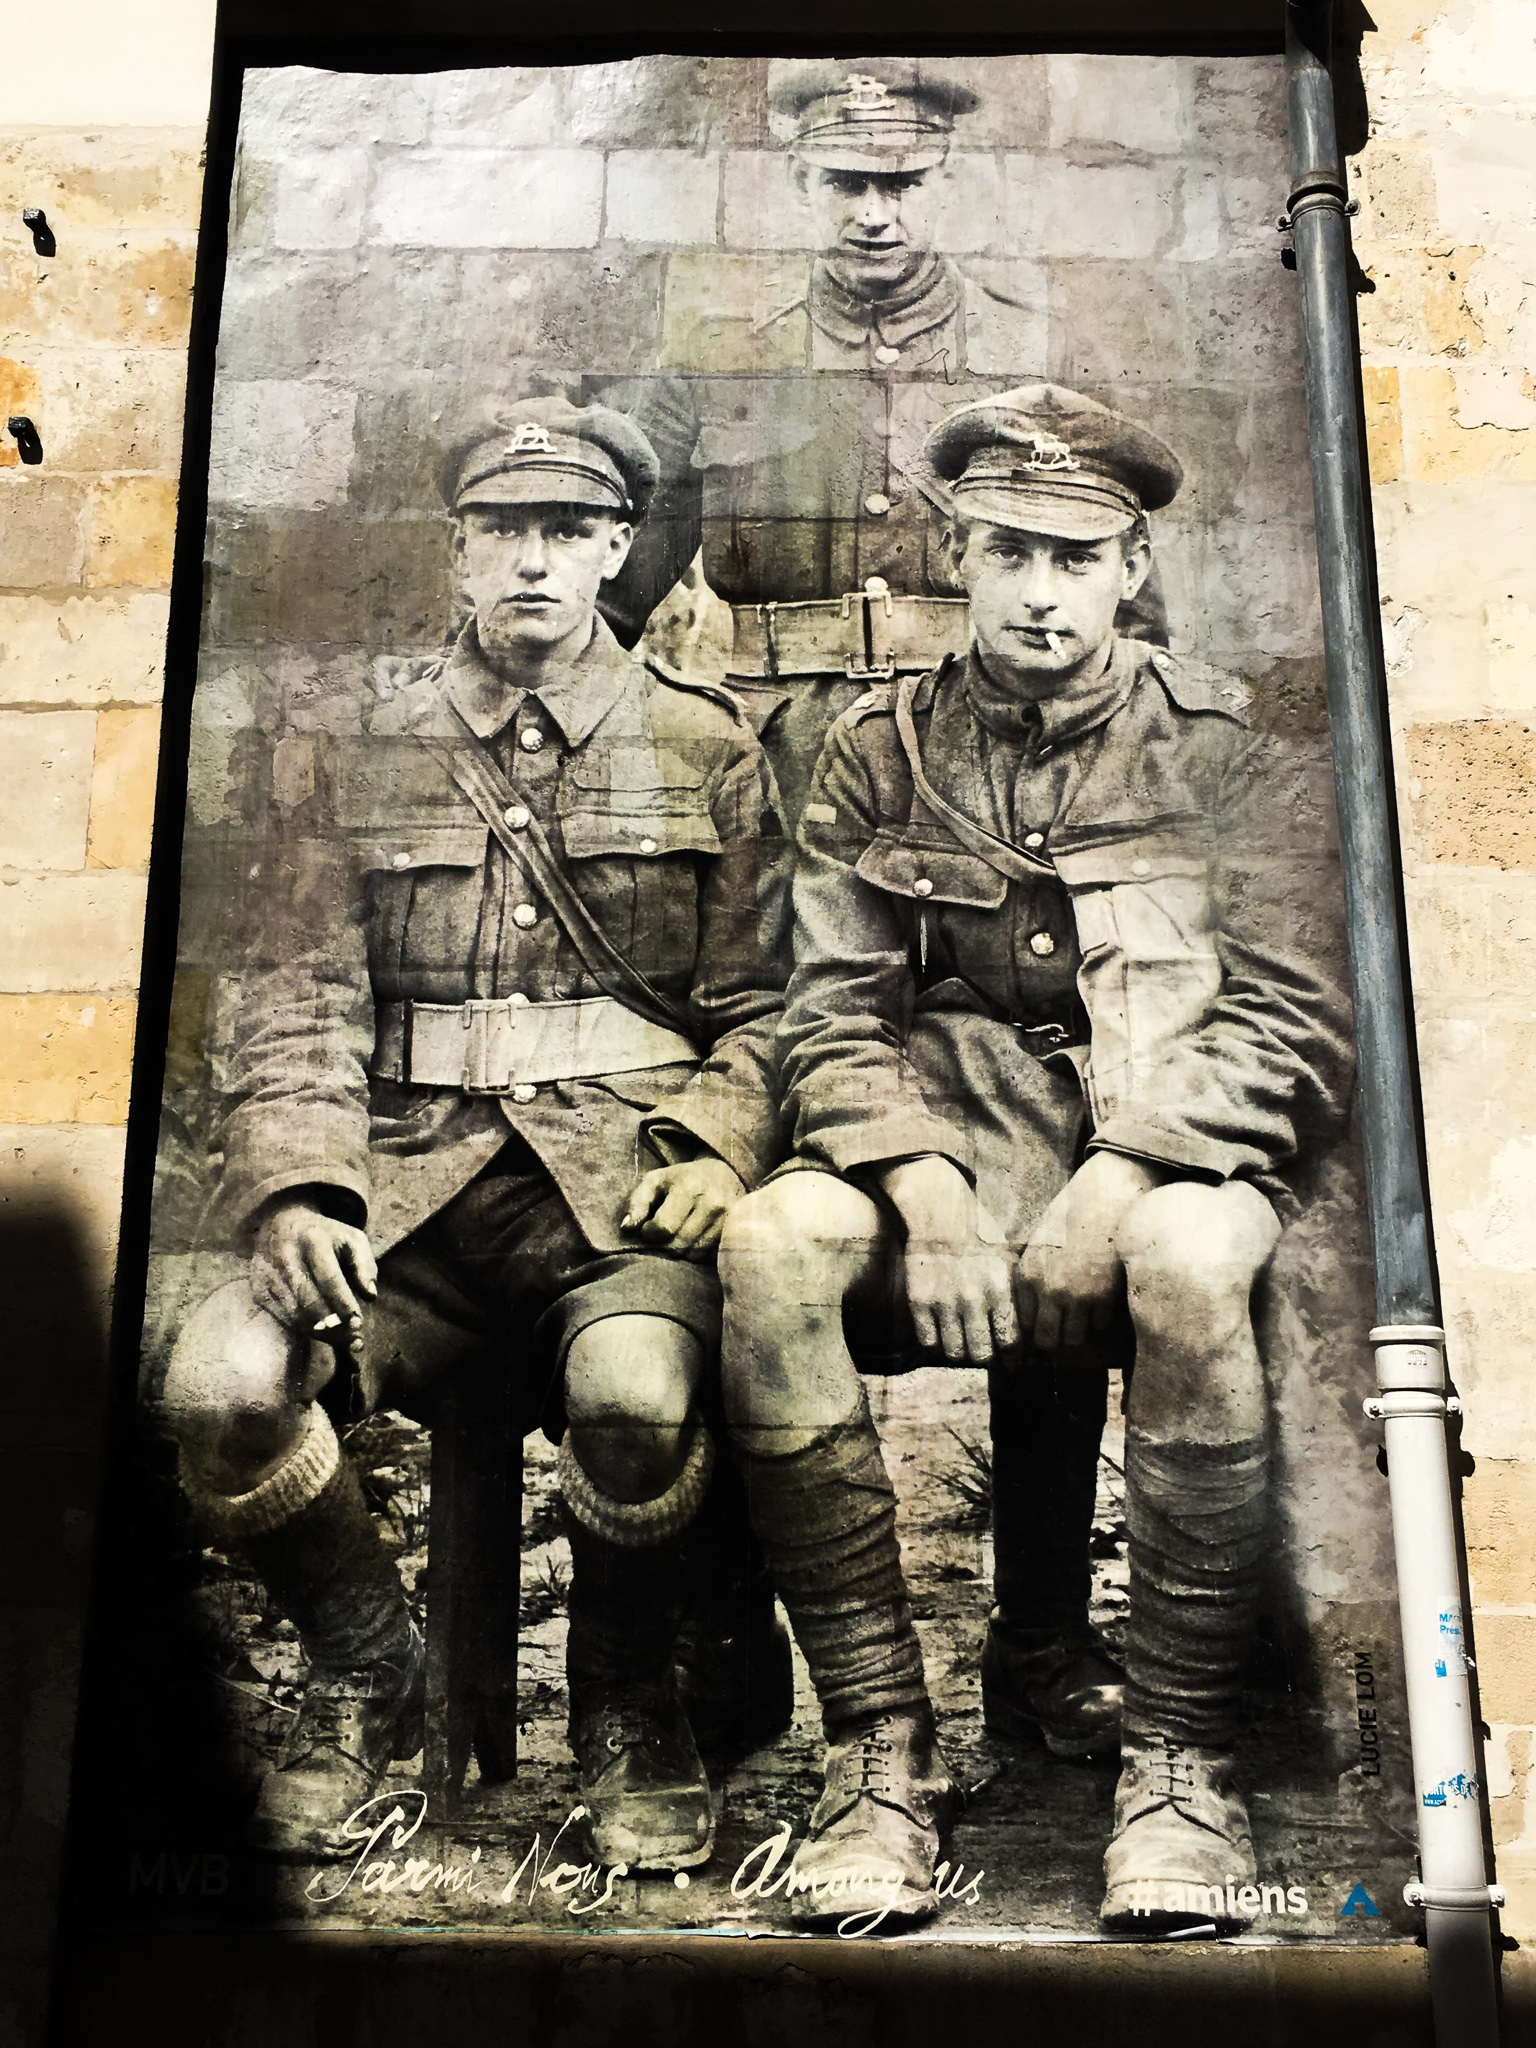 One of many posters around Amiens honoring those who served during the First World War. Photo credit: Todd Barnes